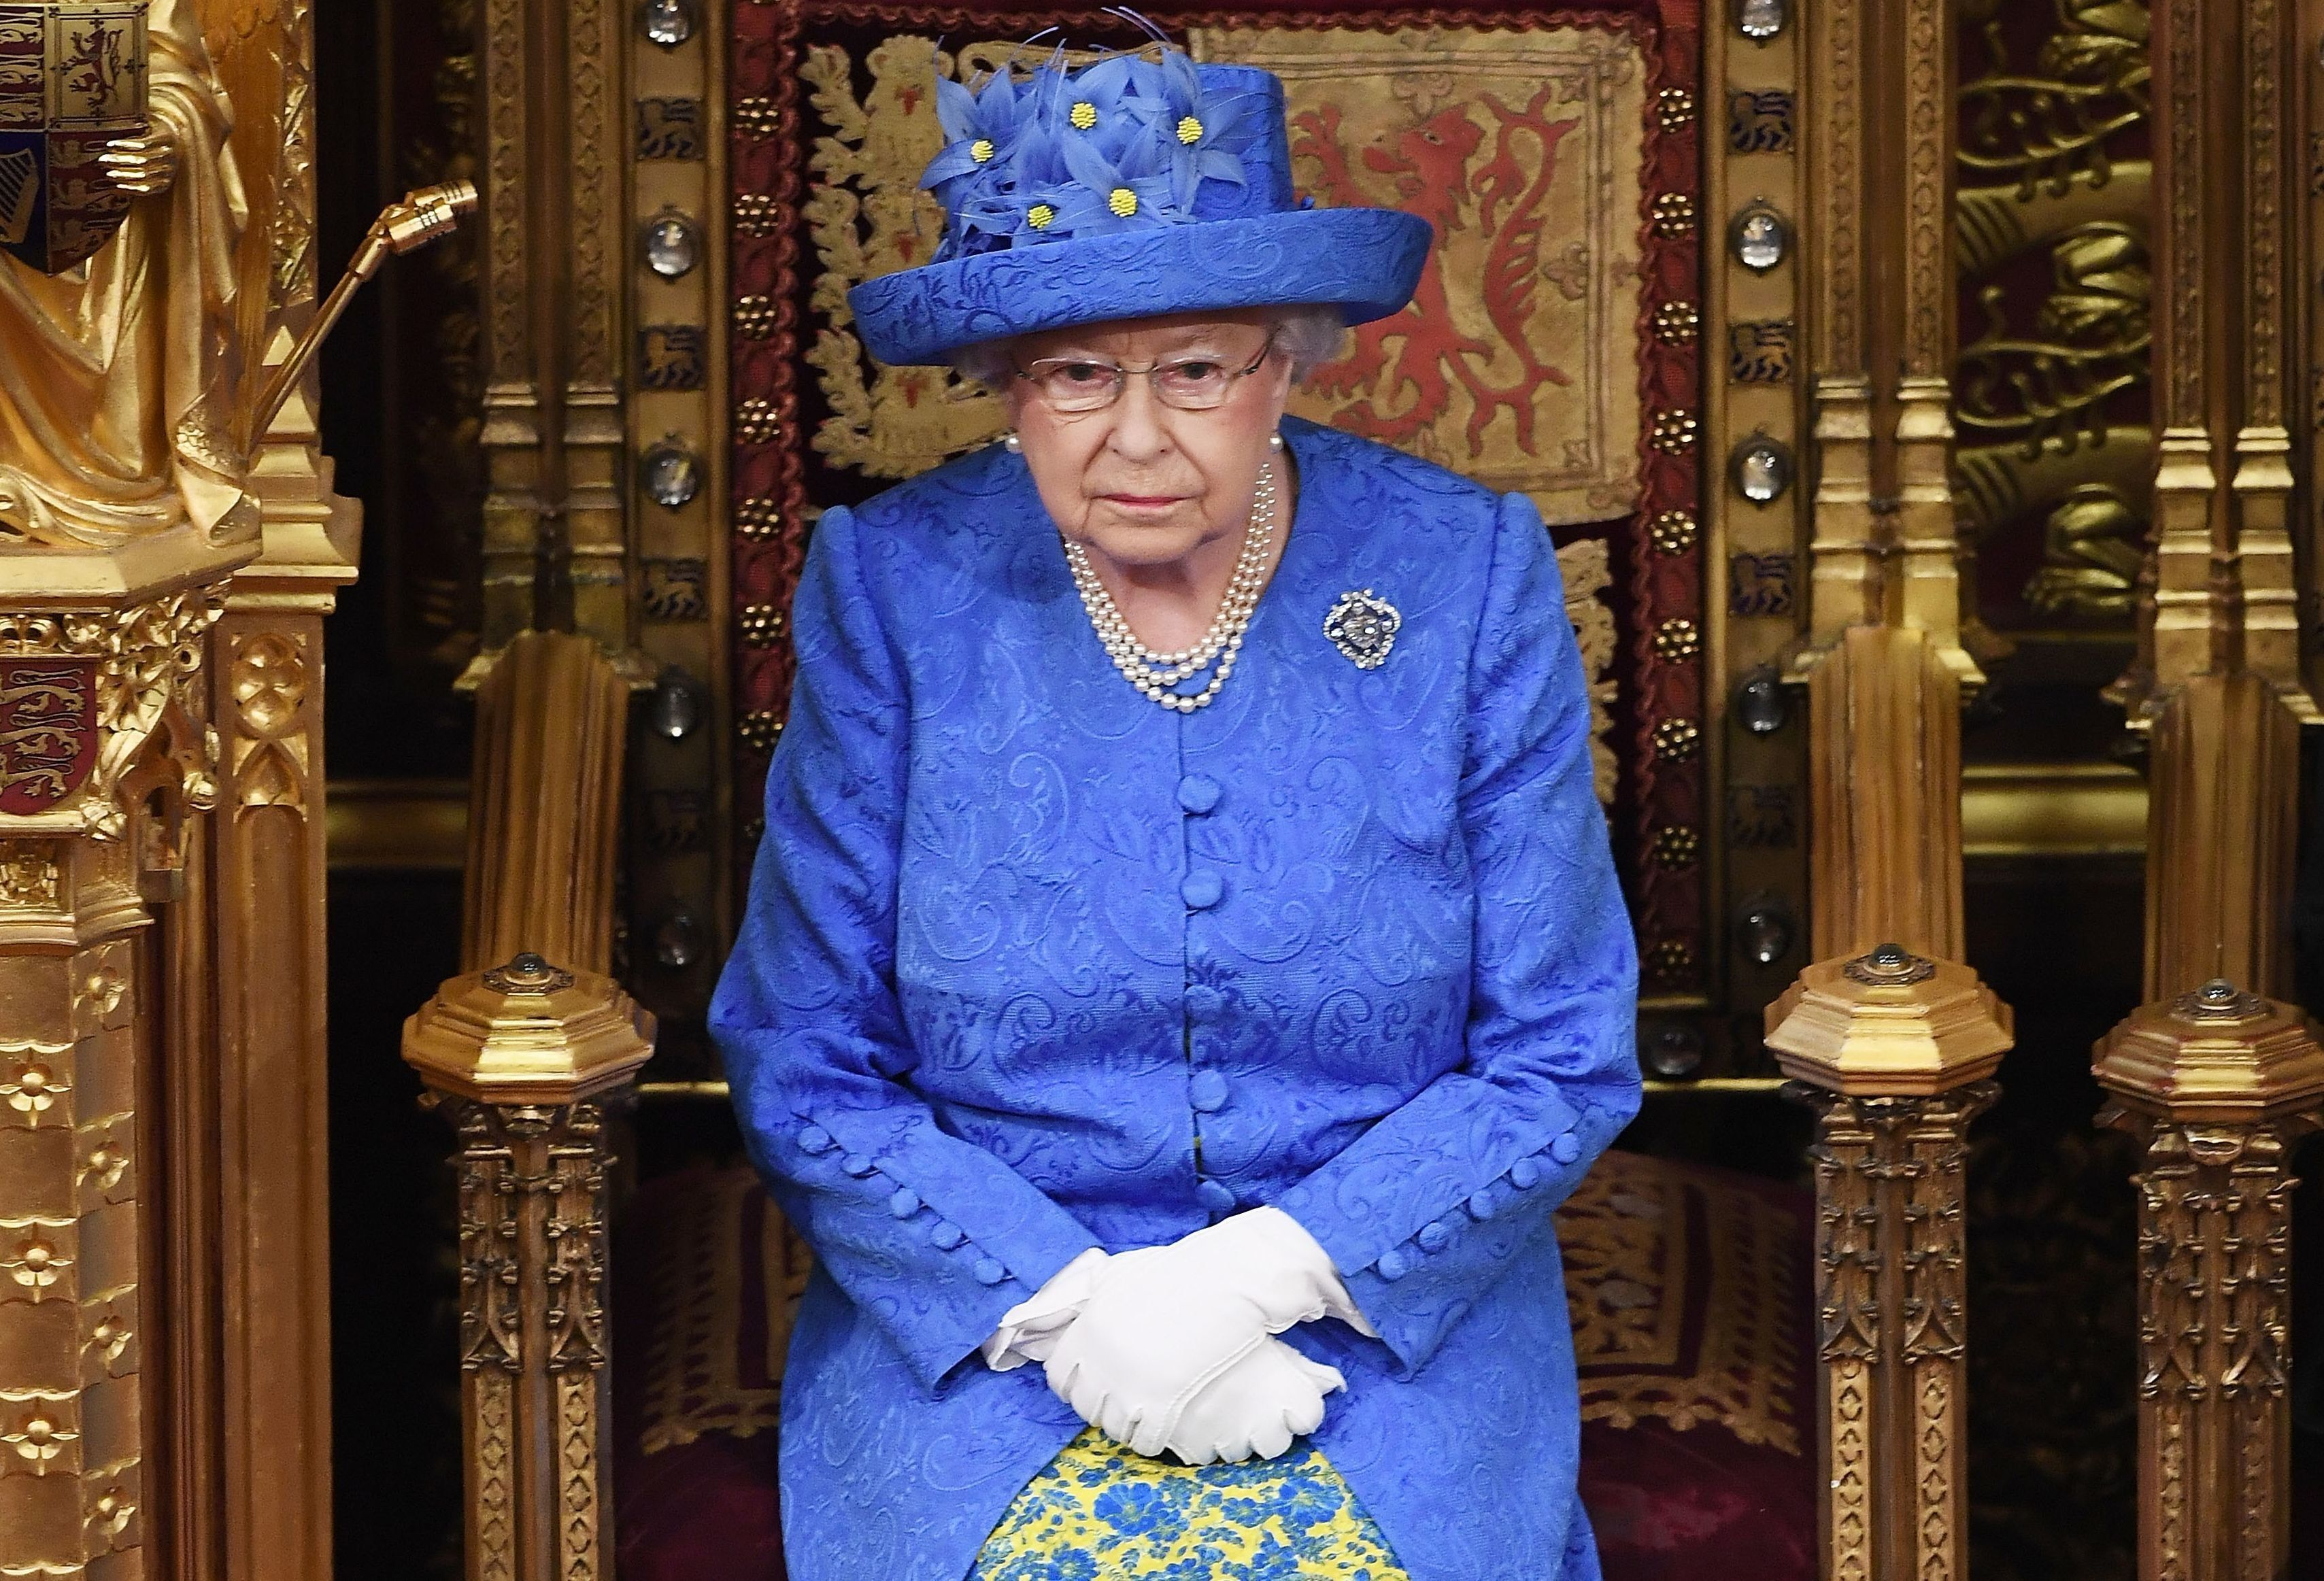 Britain's Queen Elizabeth II attends the State Opening of Parliament in the House of Lords at the Houses of Parliament in London on June 21, 2017.  Queen Elizabeth II will formally open parliament and announce the British government's legislative programme on Wednesday, two days later than planned. The state opening, a ceremony full of pomp in which the monarch reads out the Queen's Speech detailing the government's programme for the coming year, was due to take place on June 19, but was delayed after Britain's Prime Minister Theresa May's Conservative party lost their majority in the House of Commons in the June 8 election. / AFP PHOTO / POOL / Carl Court        (Photo credit should read CARL COURT/AFP/Getty Images)